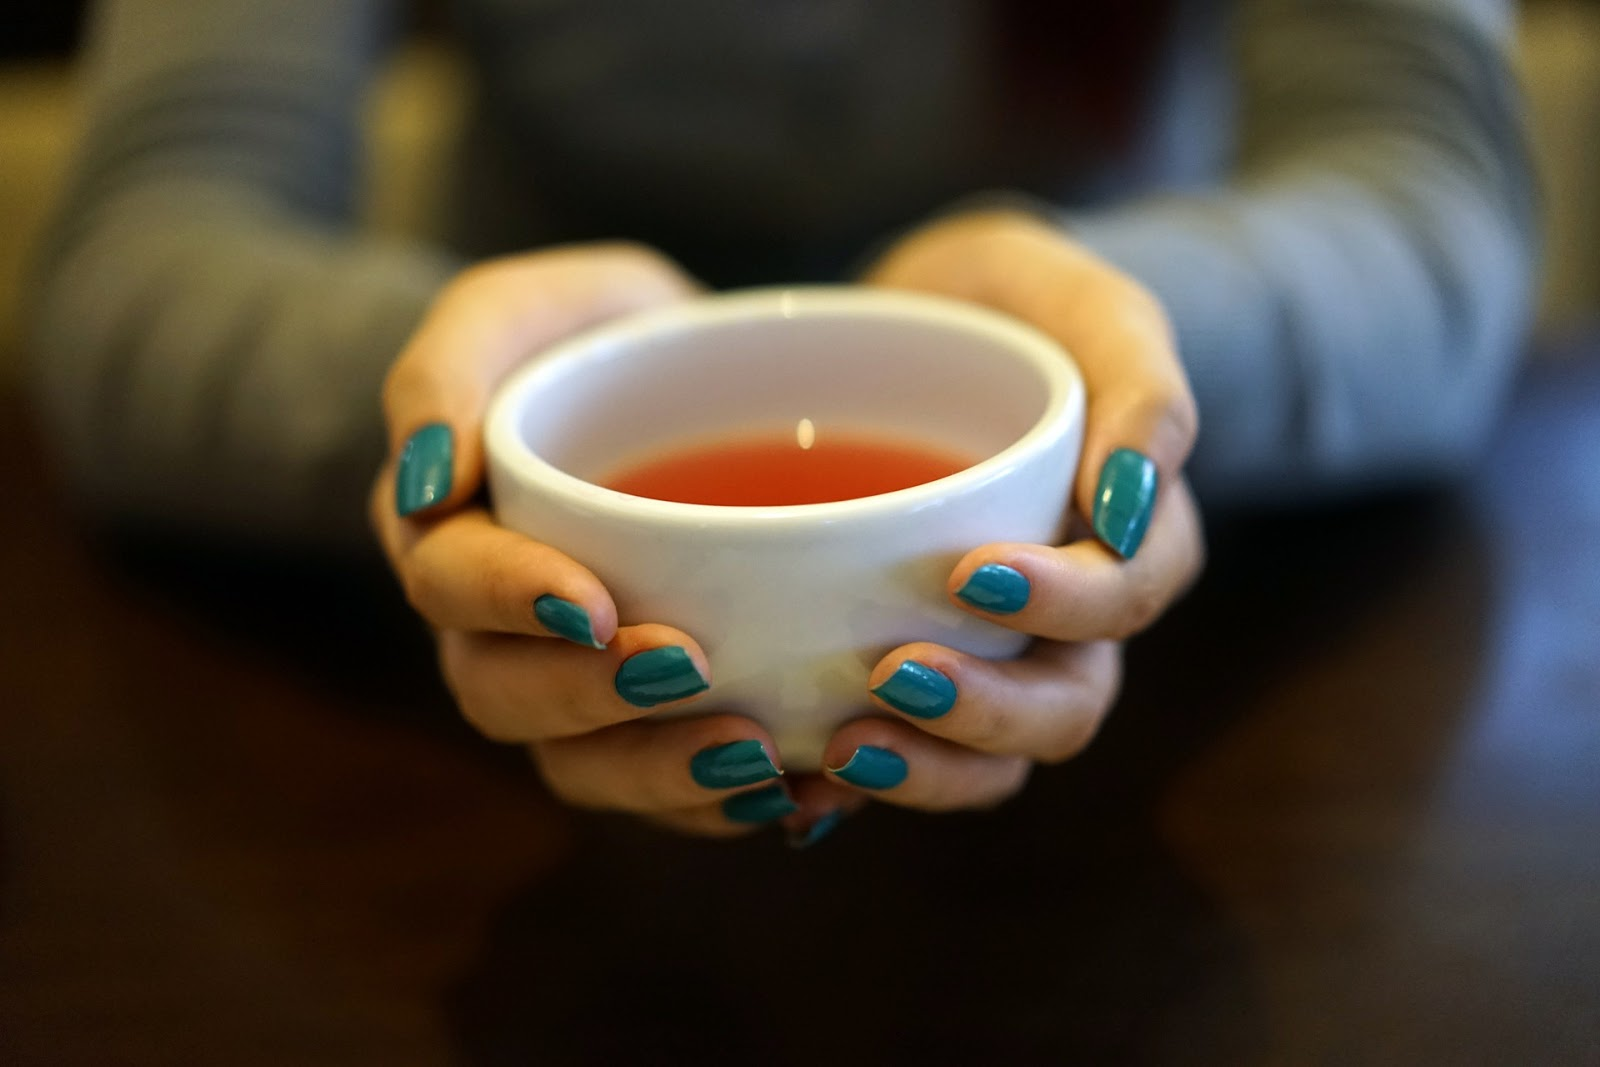 6 Teas That Will Boost Your Metabolism - www.mumisfit.com - Healthy eating, weight loss tips, boost your metabolism, teas